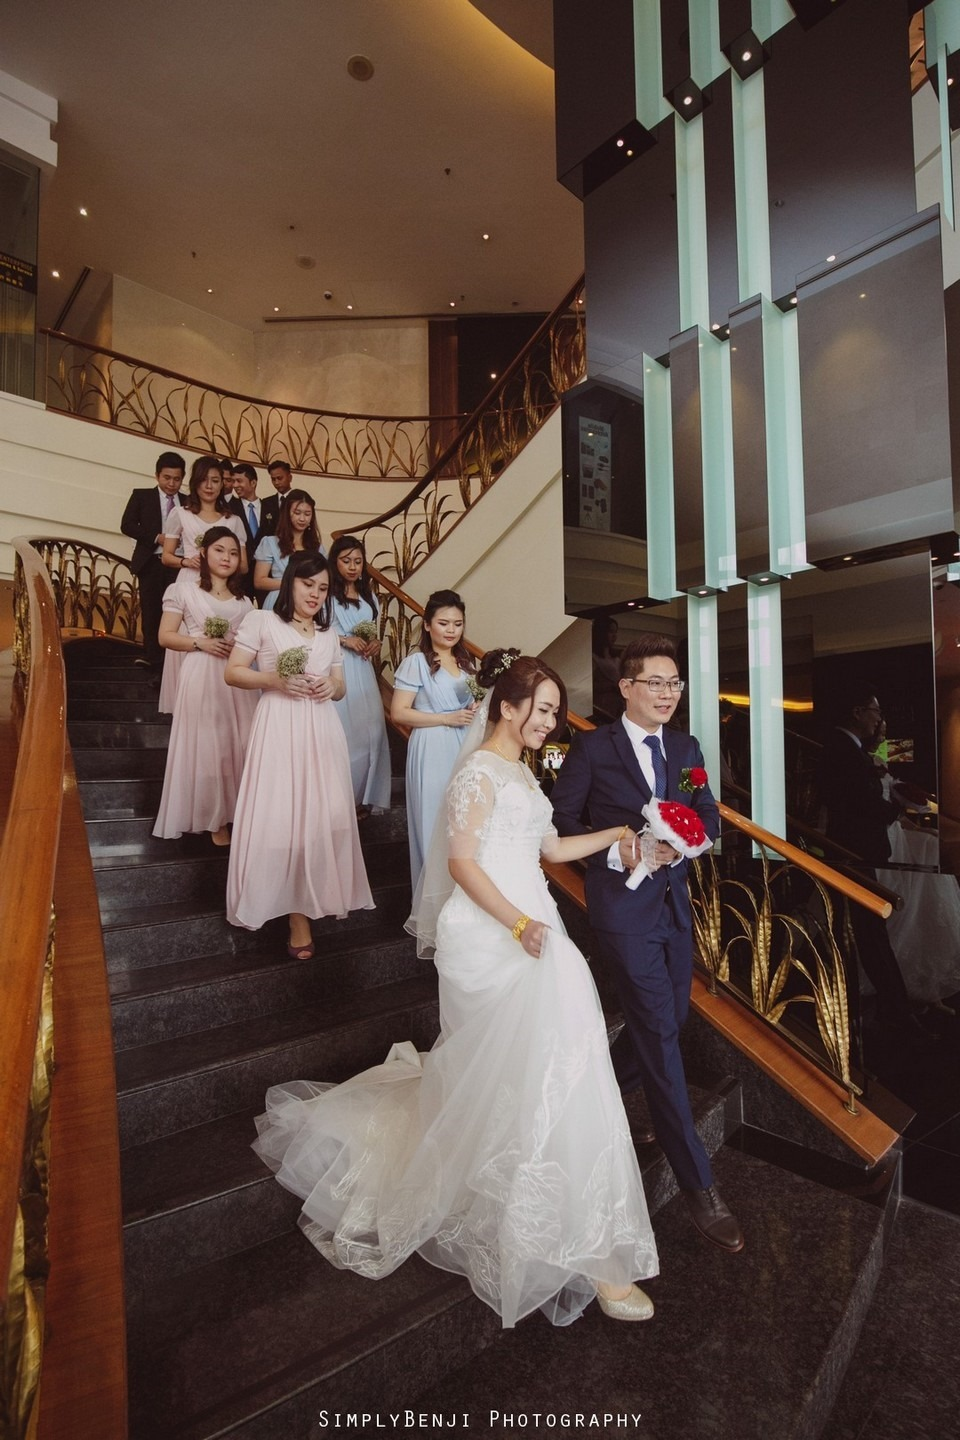 Gate Crashing Eastin Hotel ROM Kechara House Petalling Jaya Viva Home Kechara Restaurant_KL Malaysia Wedding Photographer_20171004102155_030920171004102155_030920171004102155_0309